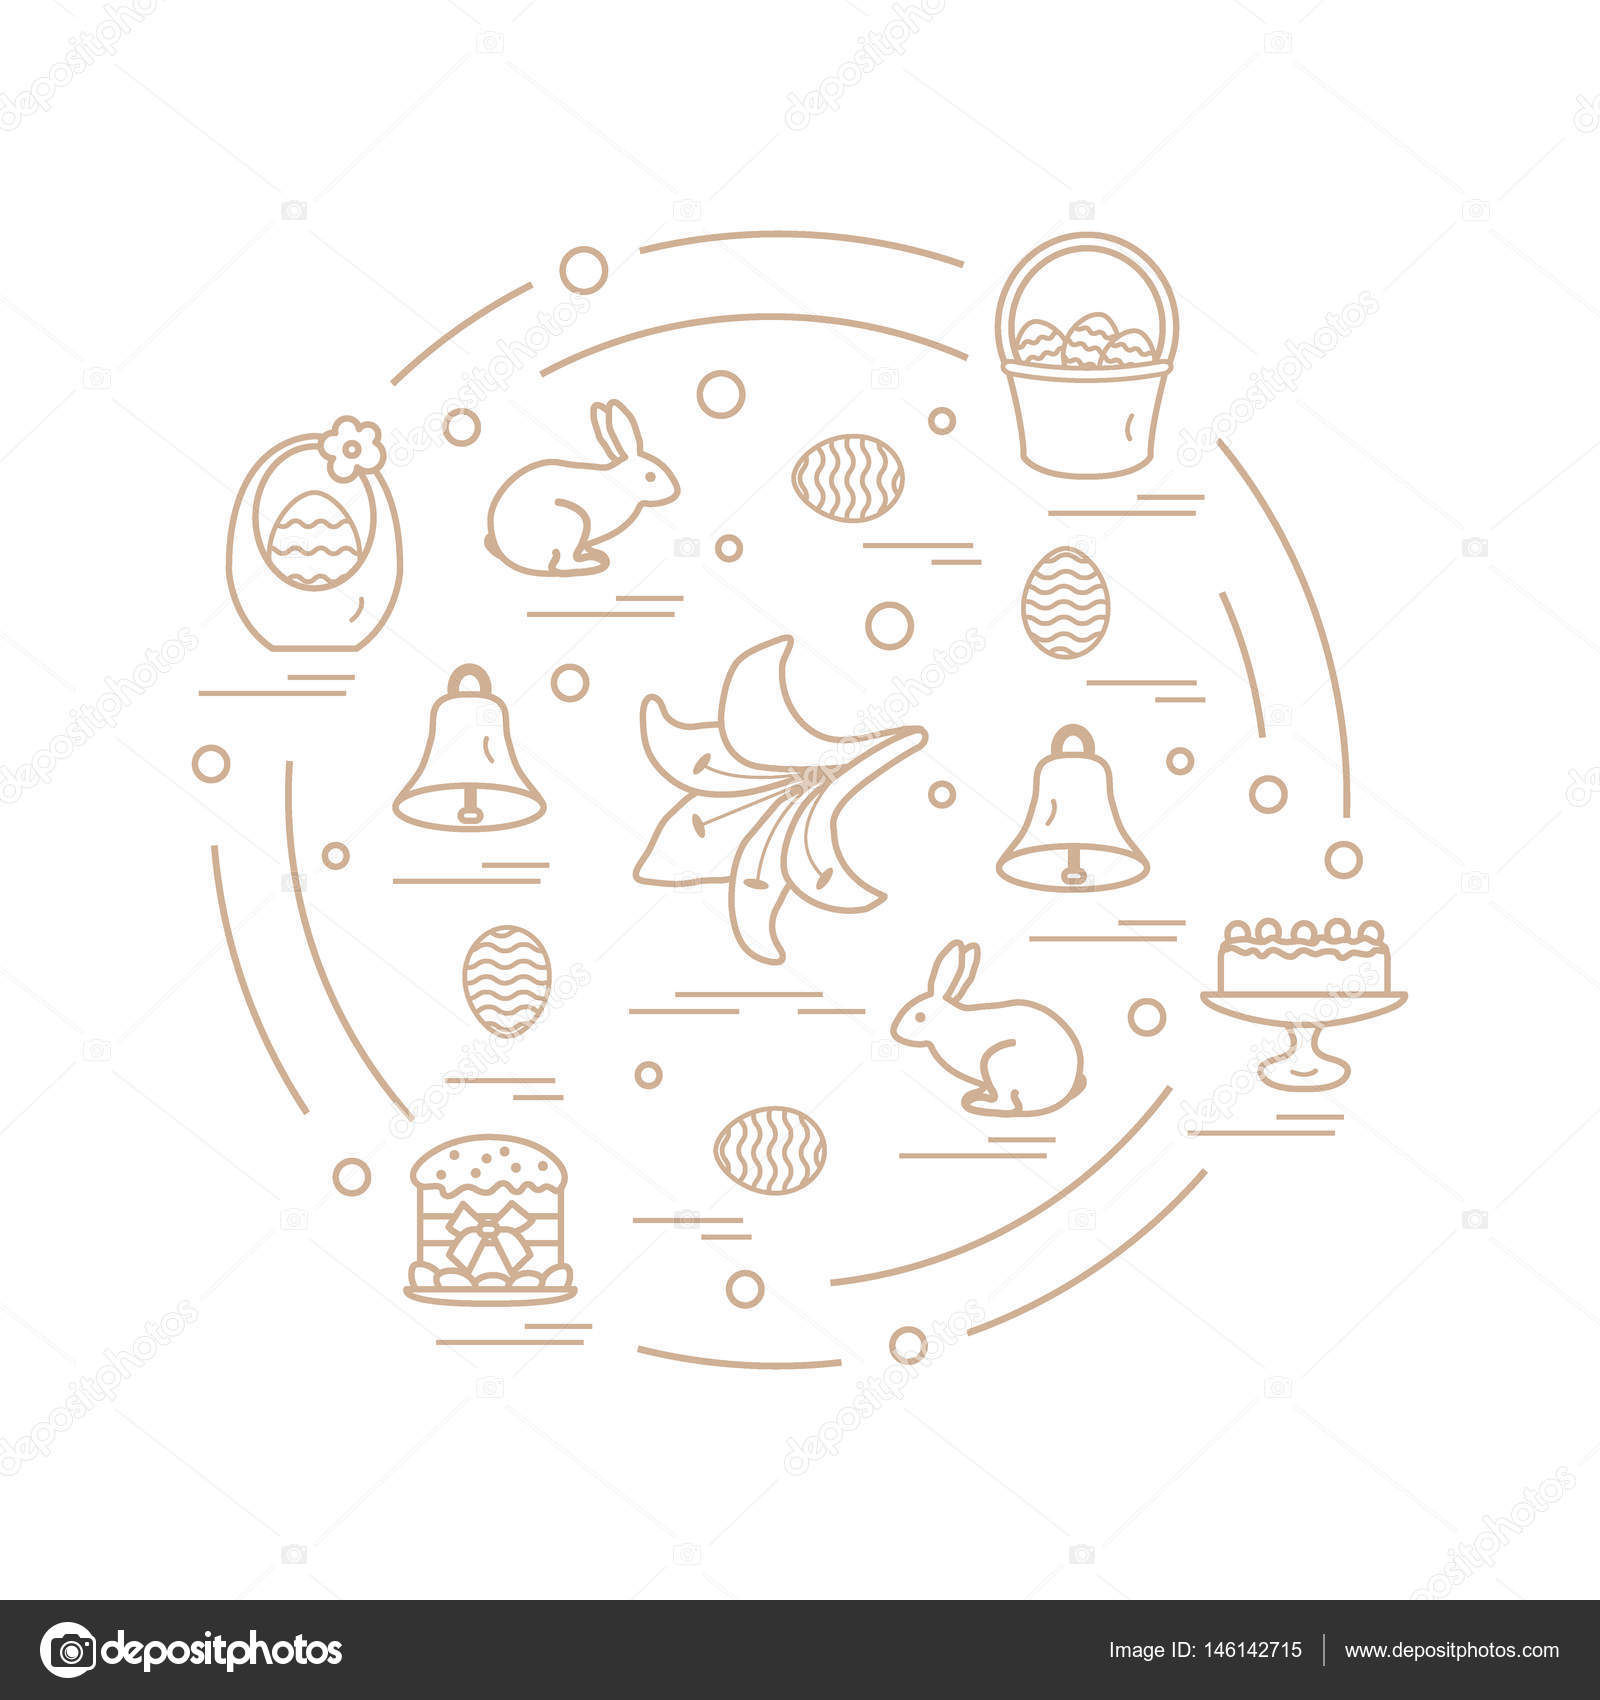 Cute vector illustration with different symbols for easter arran cute vector illustration with different symbols for easter arranged in a circle including icons of simnel cake lily baskets eggs and other buycottarizona